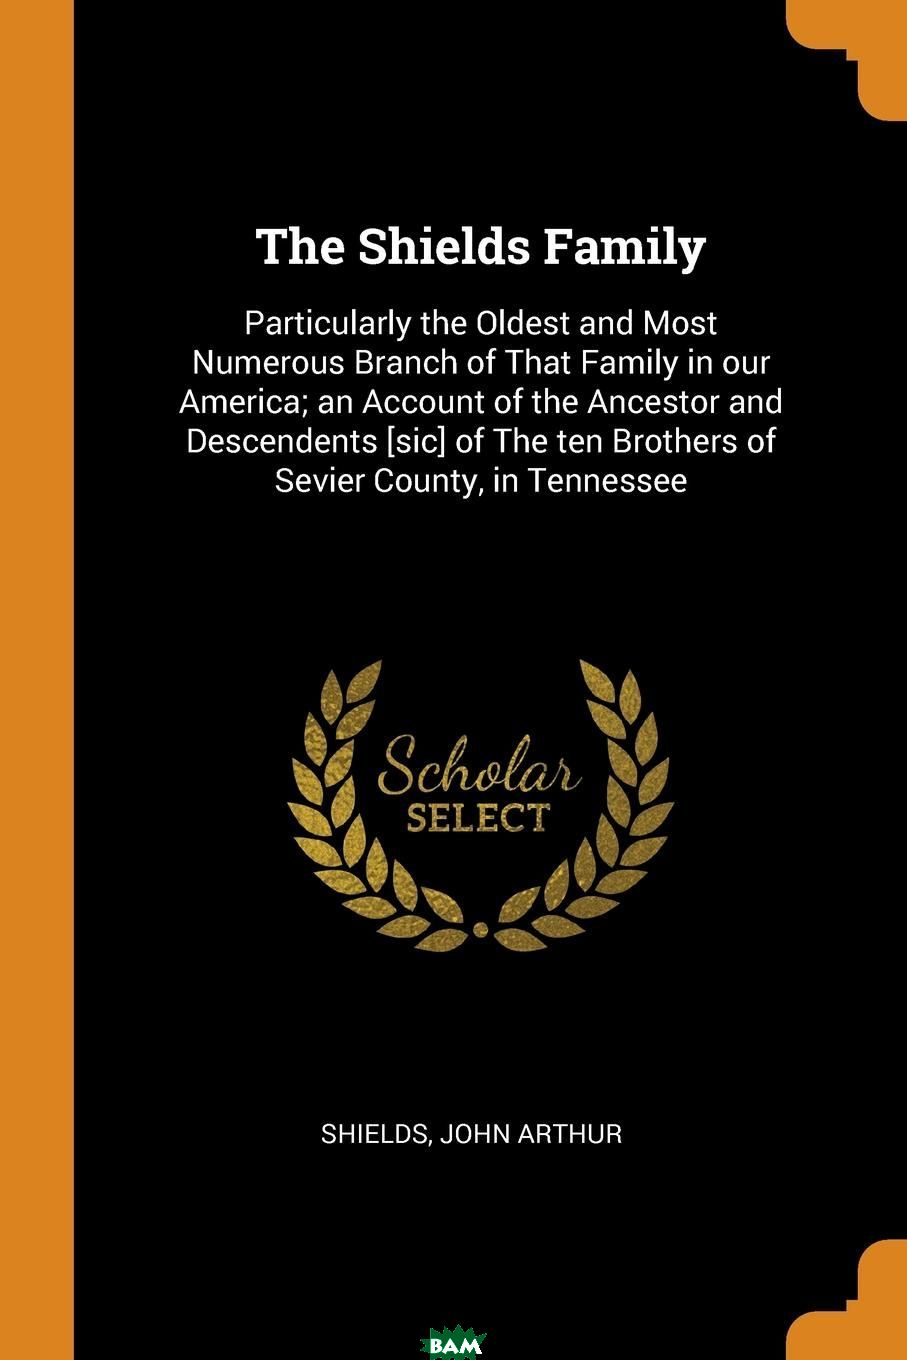 Купить The Shields Family. Particularly the Oldest and Most Numerous Branch of That Family in our America; an Account of the Ancestor and Descendents .sic. of The ten Brothers of Sevier County, in Tennessee, Shields John Arthur, 9780353141308